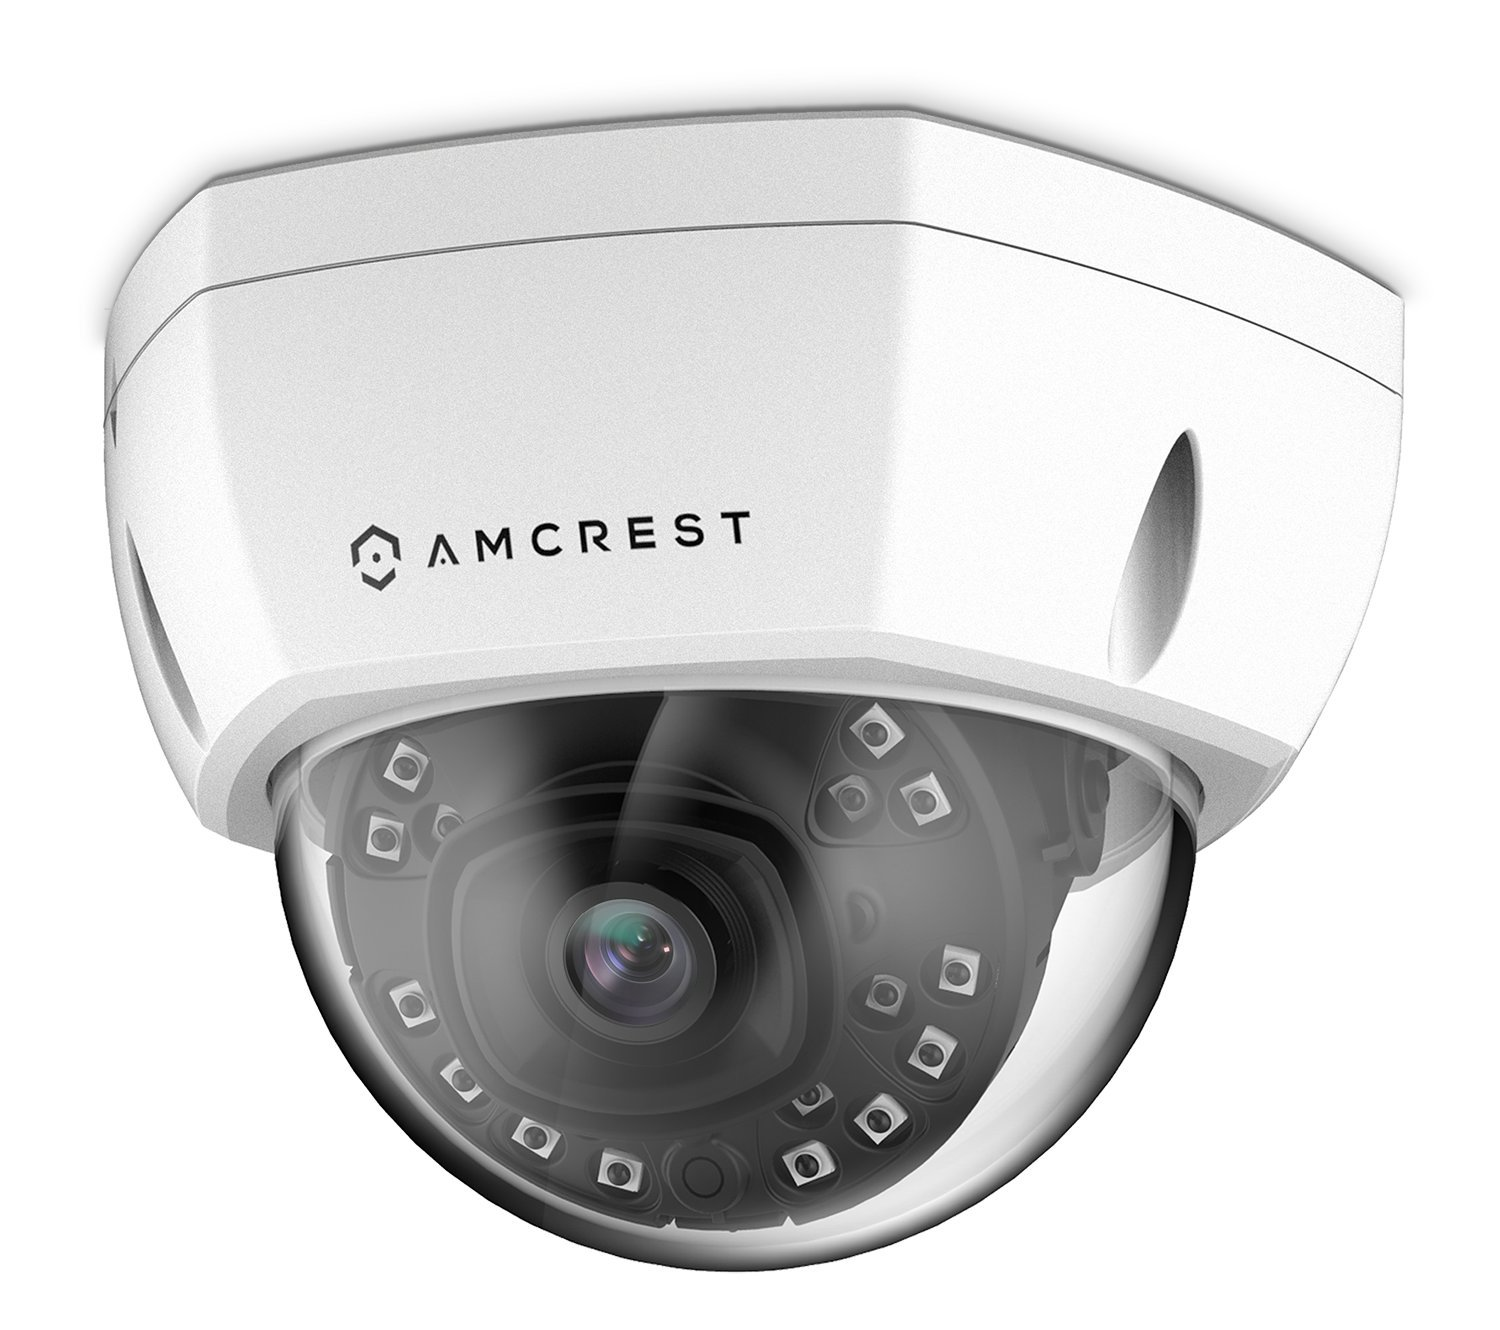 Amcrest UltraHD Outdoor 4-Megapixel Vandal Dome IP Security PoE Camera - MicroSD Storage, IP67 Weatherproof, IK10 Vandal-Proof, 4MP (2688 TVL), IP4M-1028E (White) by Amcrest